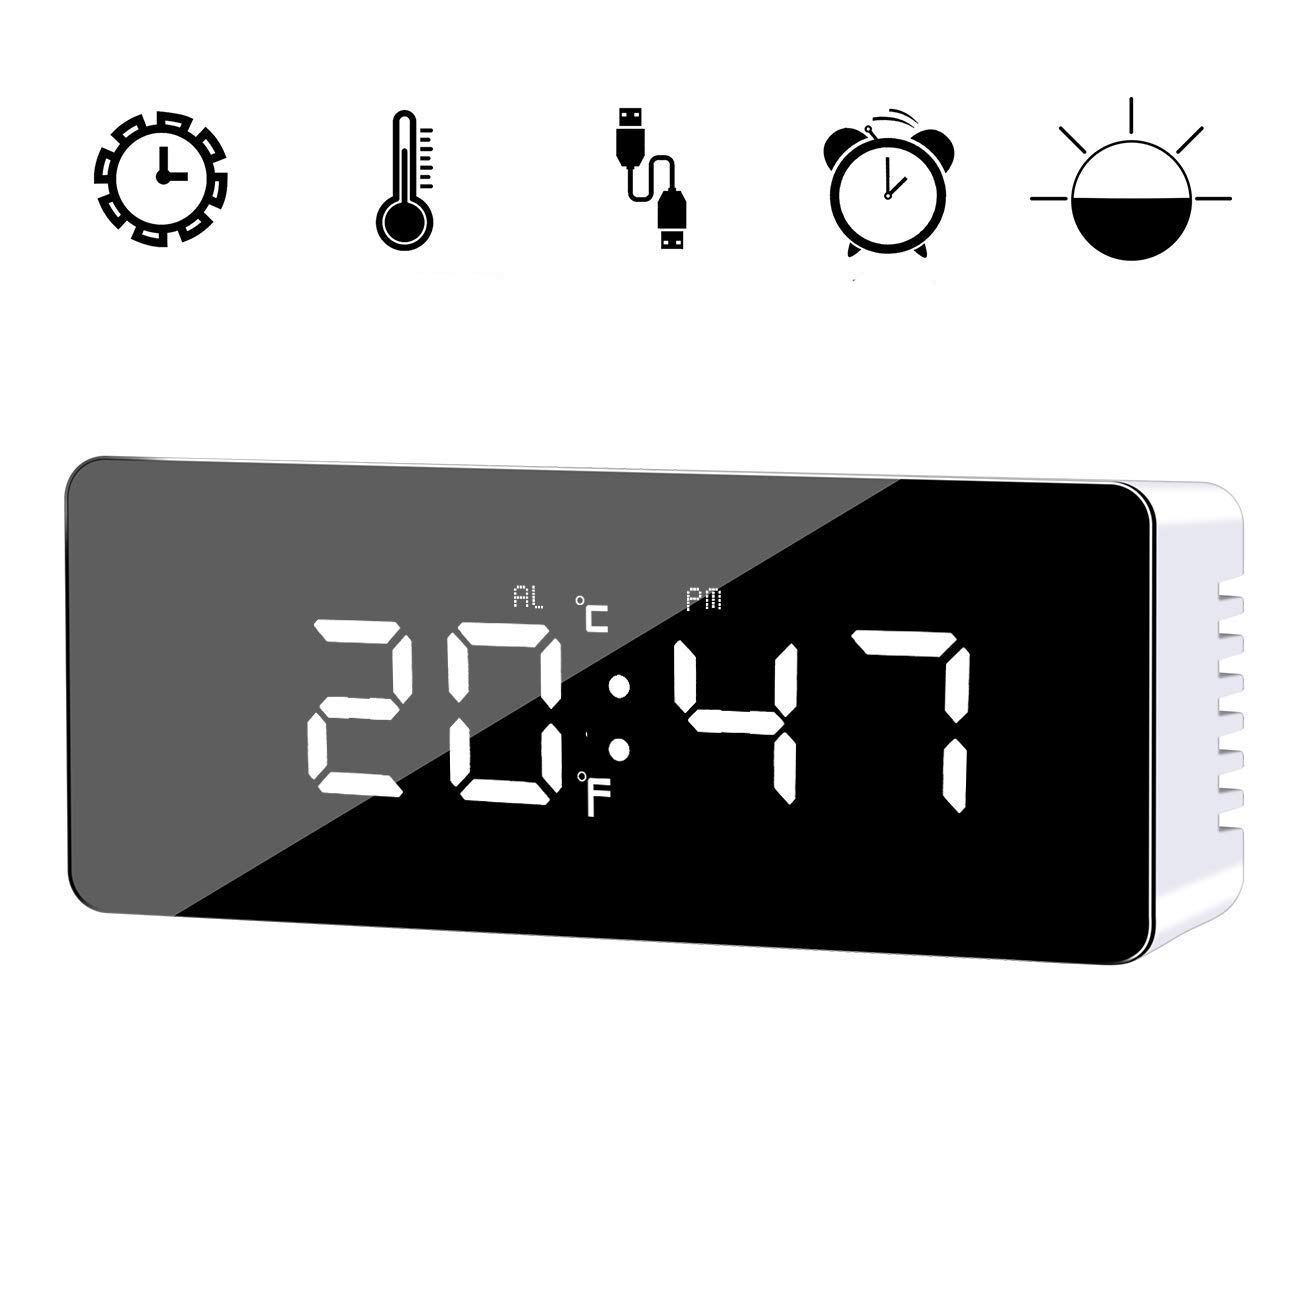 Patasen Digital LED Mirror Alarm Clock Battery Operated Clock Temperature night Lights for Bedroom Living Room, Office, Travel - Battery Powered & USB Powered(Piazza)